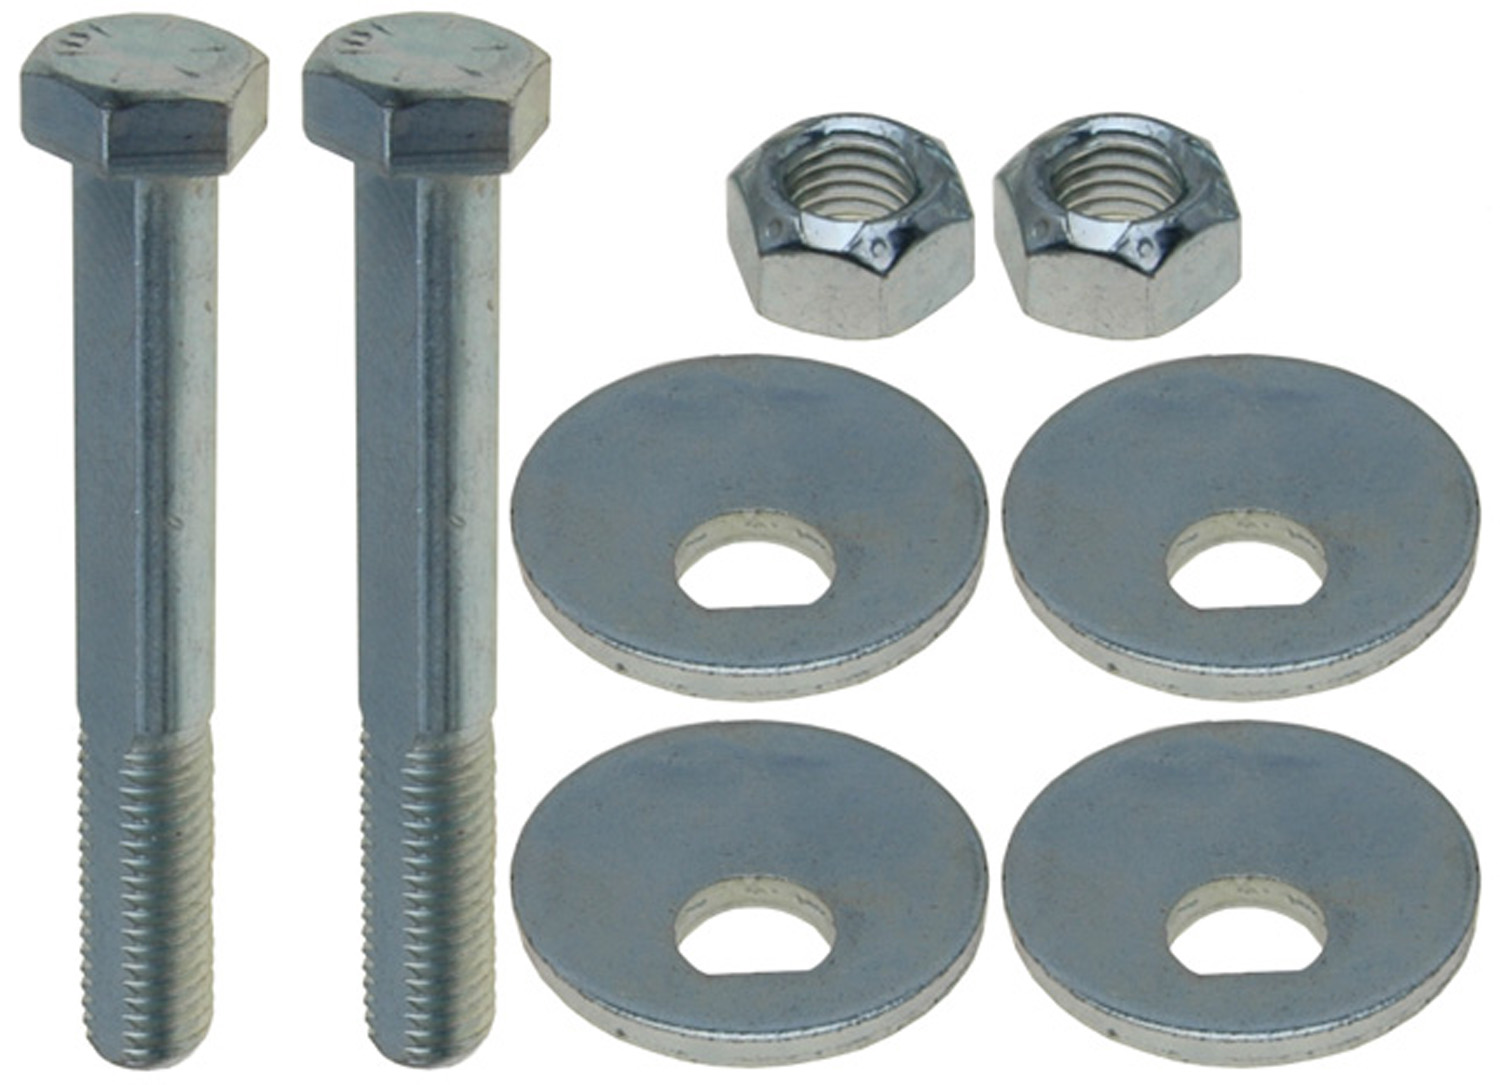 ACDELCO PROFESSIONAL - Alignment Caster / Pinion Angle Bolt Kit - DCC 45K0221